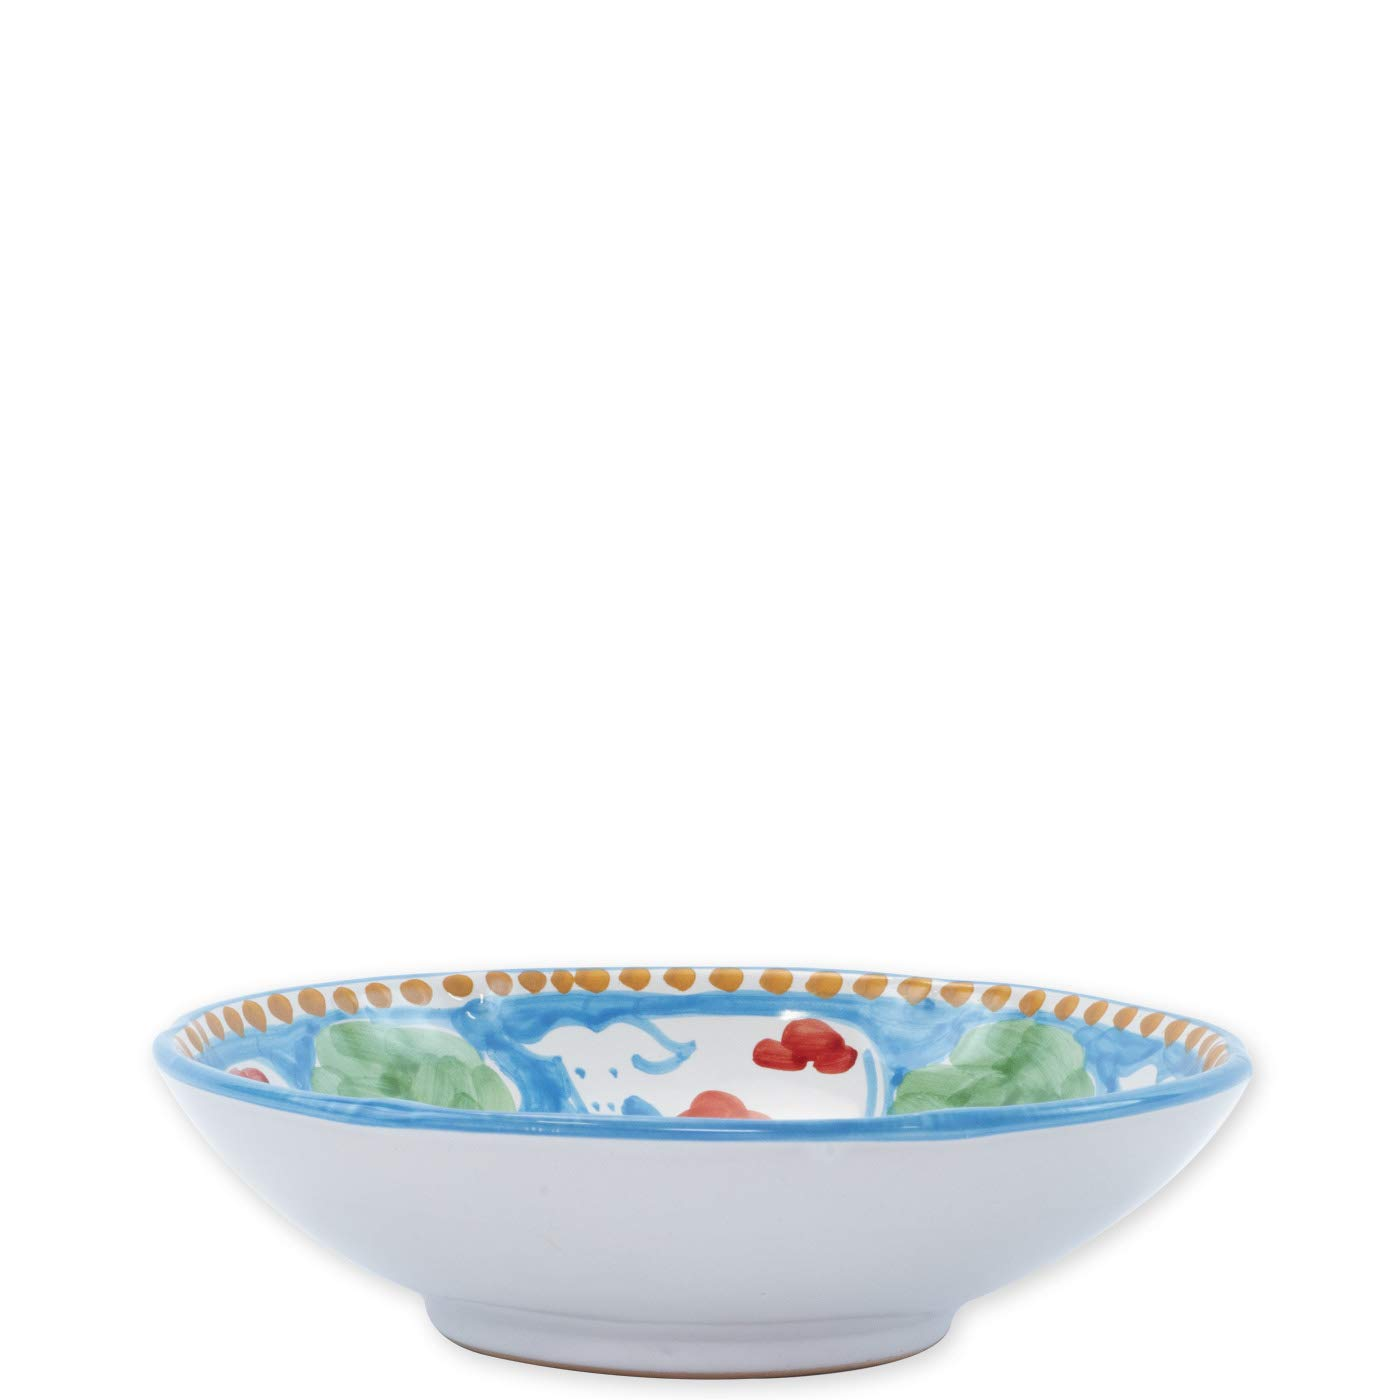 Vietri Mucca Coupe Pasta Bowl - Campagna Collection MCA-1003